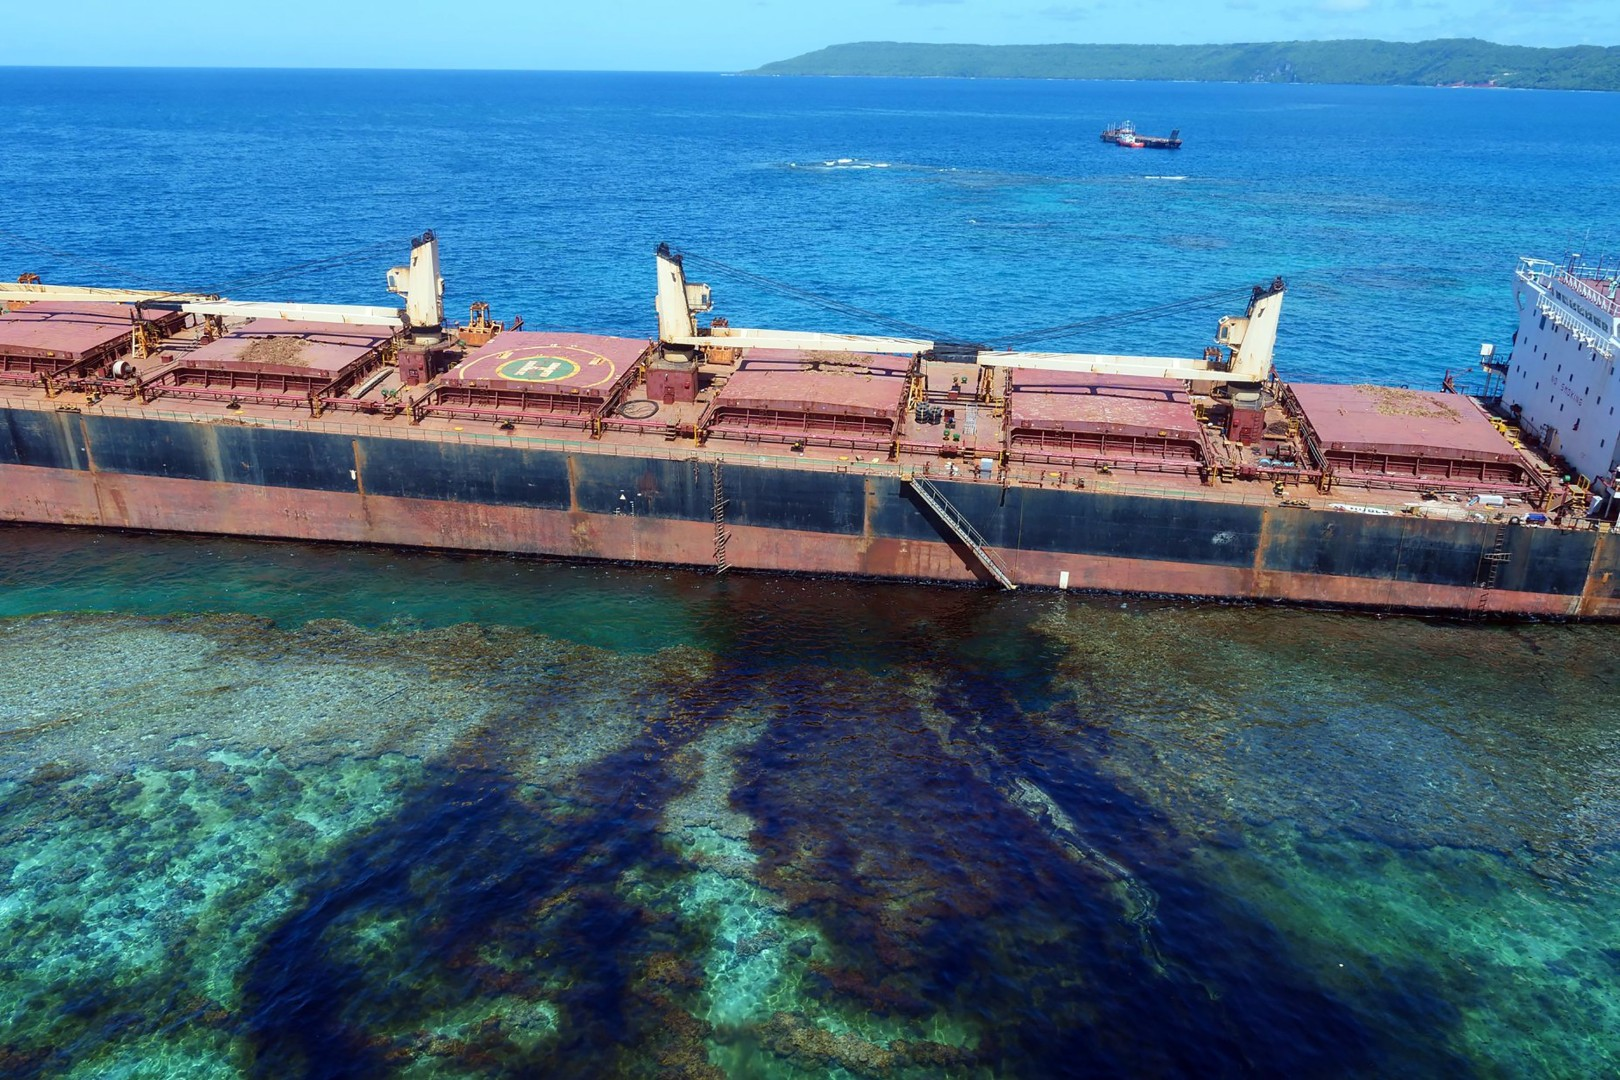 Australia sends help to Solomon Islands as grounded Hong